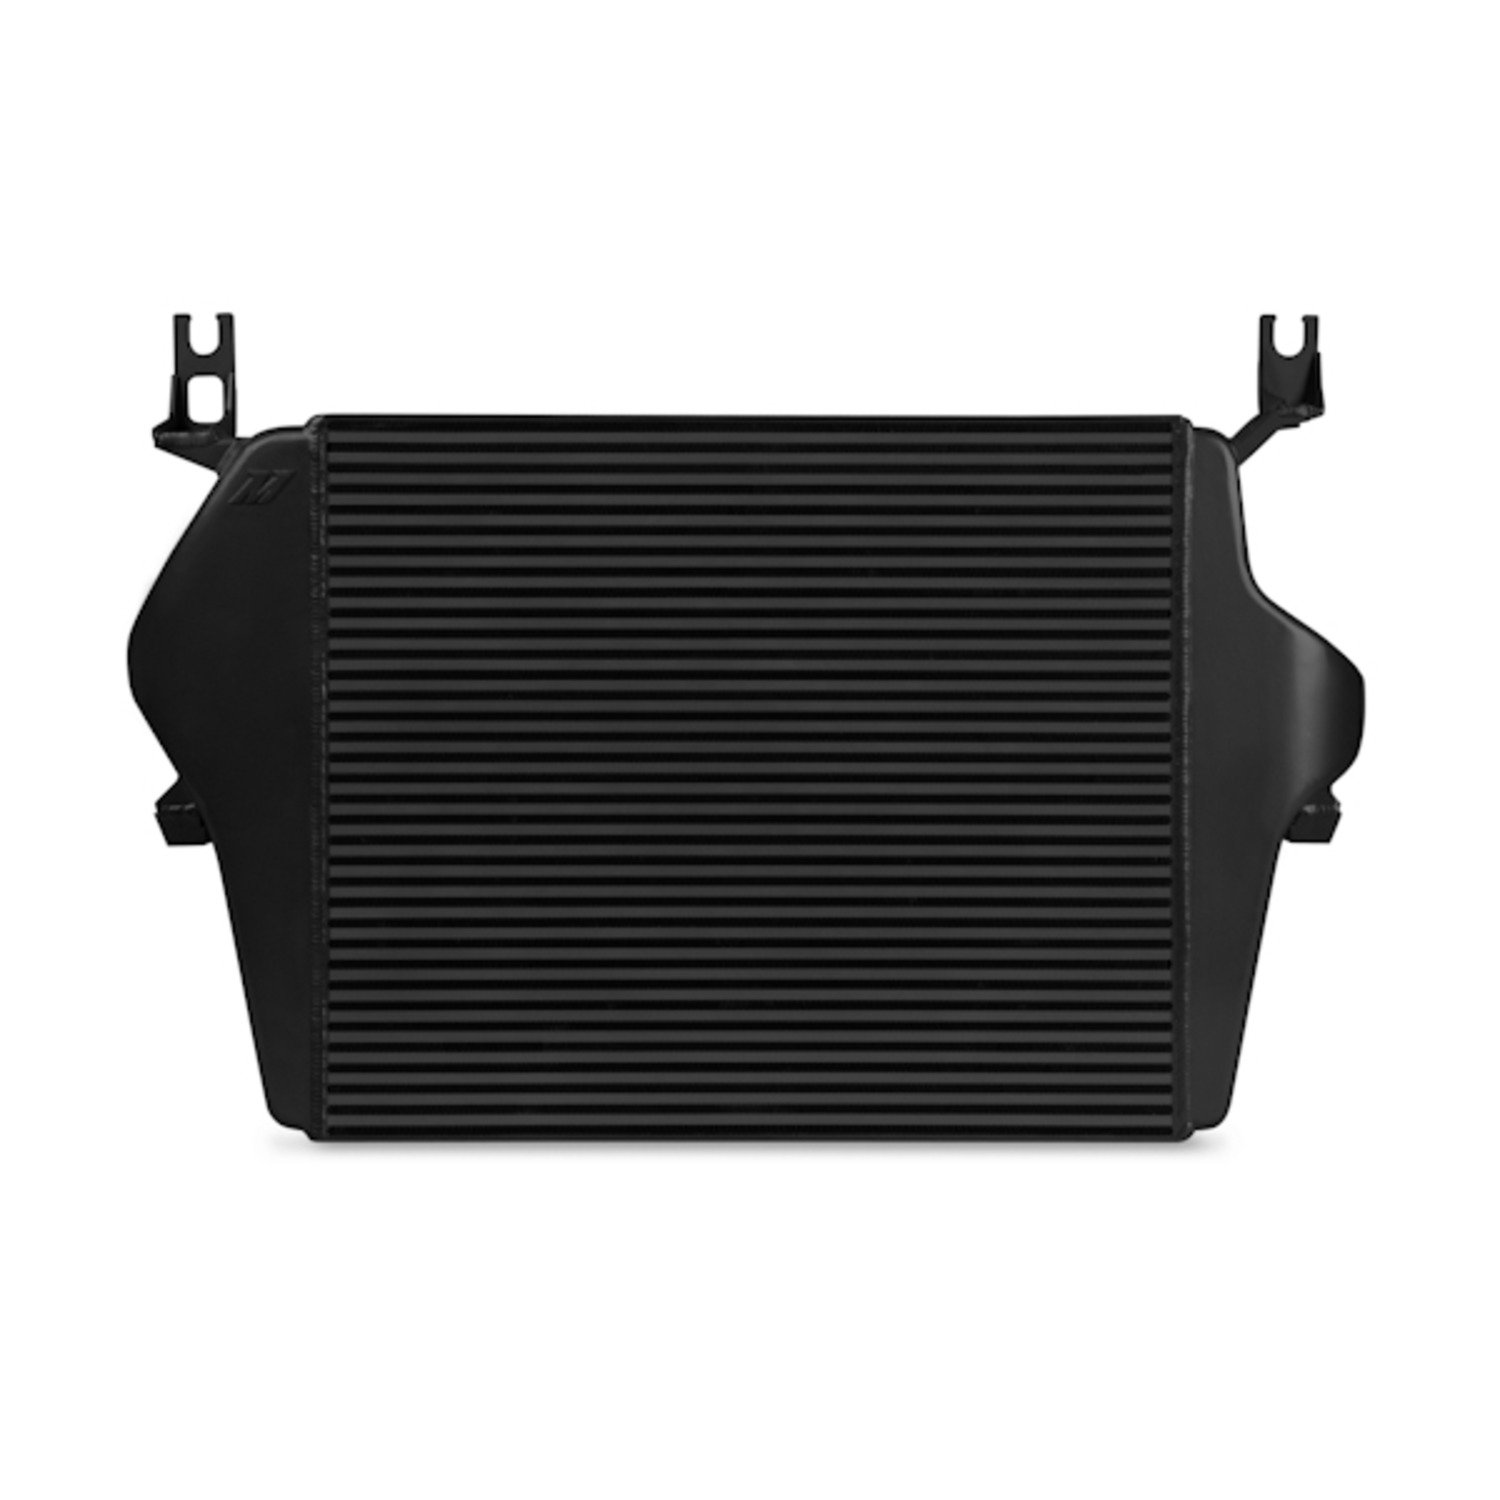 2003-2007 Black Mishimoto MMINT-F2D-03BK Ford 6.0L Powerstroke Intercooler